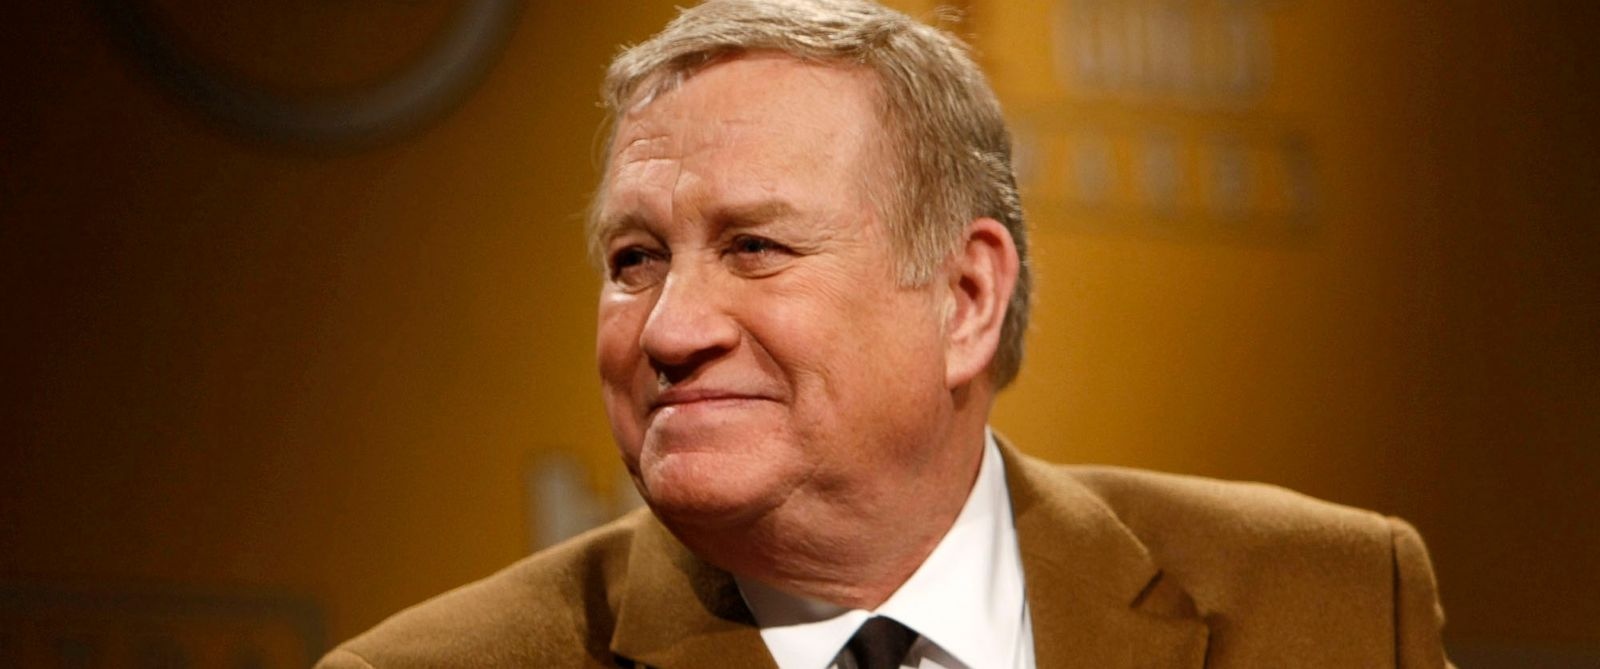 PHOTO: Ken Howard, the first elected President of the Screen Actors Guild-American Federation of Television and Radio Artists (SAG-AFTRA) walks won stage at the Pacific Design Center in Los Angeles, Dec. 11, 2013.